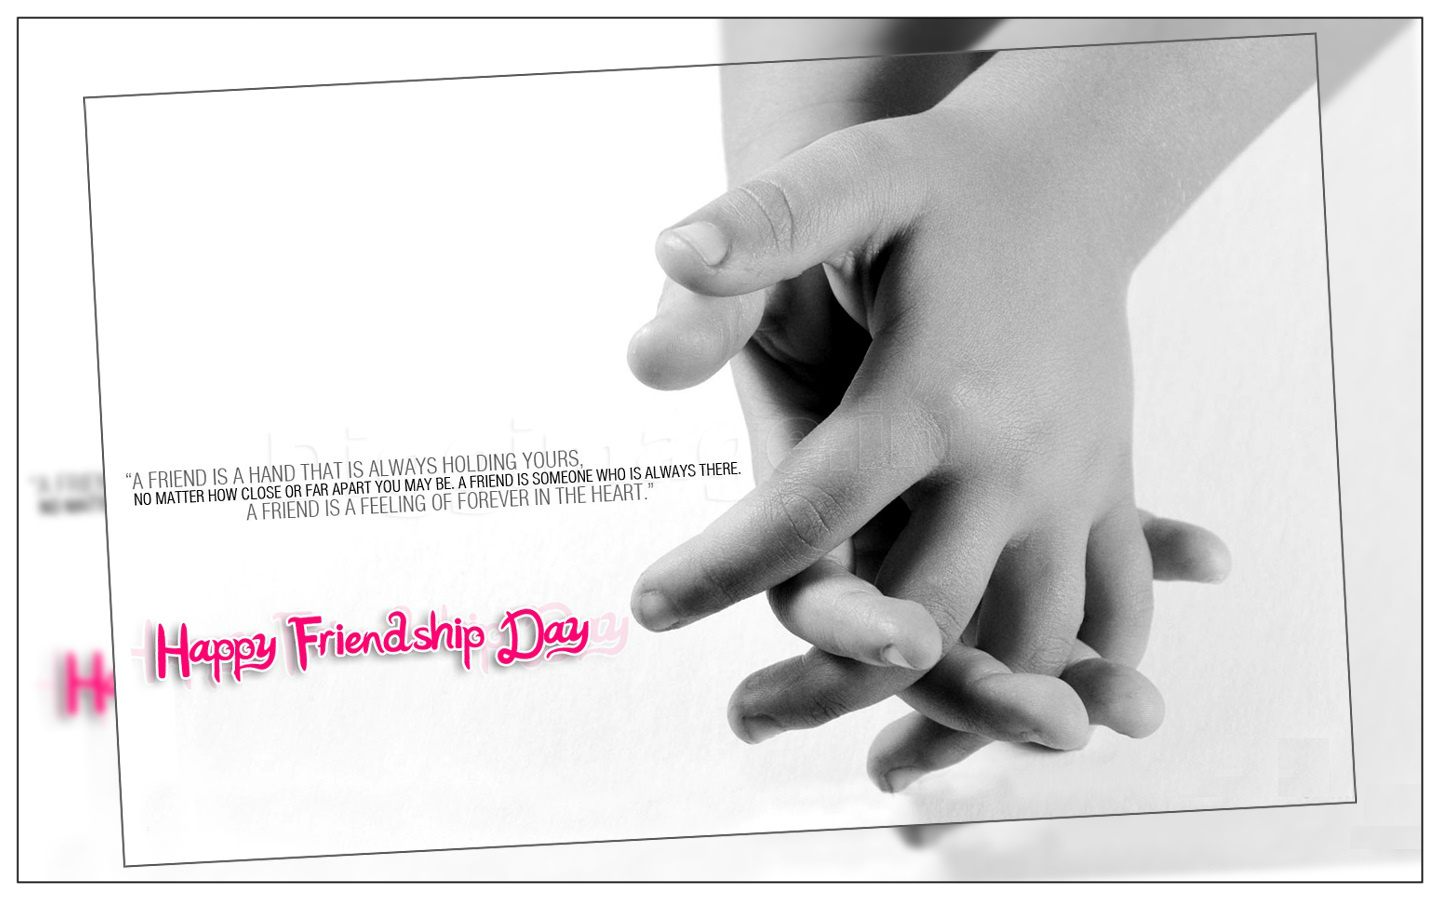 Best friends feelings love feelings friendship day happy see all beautiful friendship day photo gallery send e cards images graphics and animation to your beloved ones on your favorite social networking sites m4hsunfo